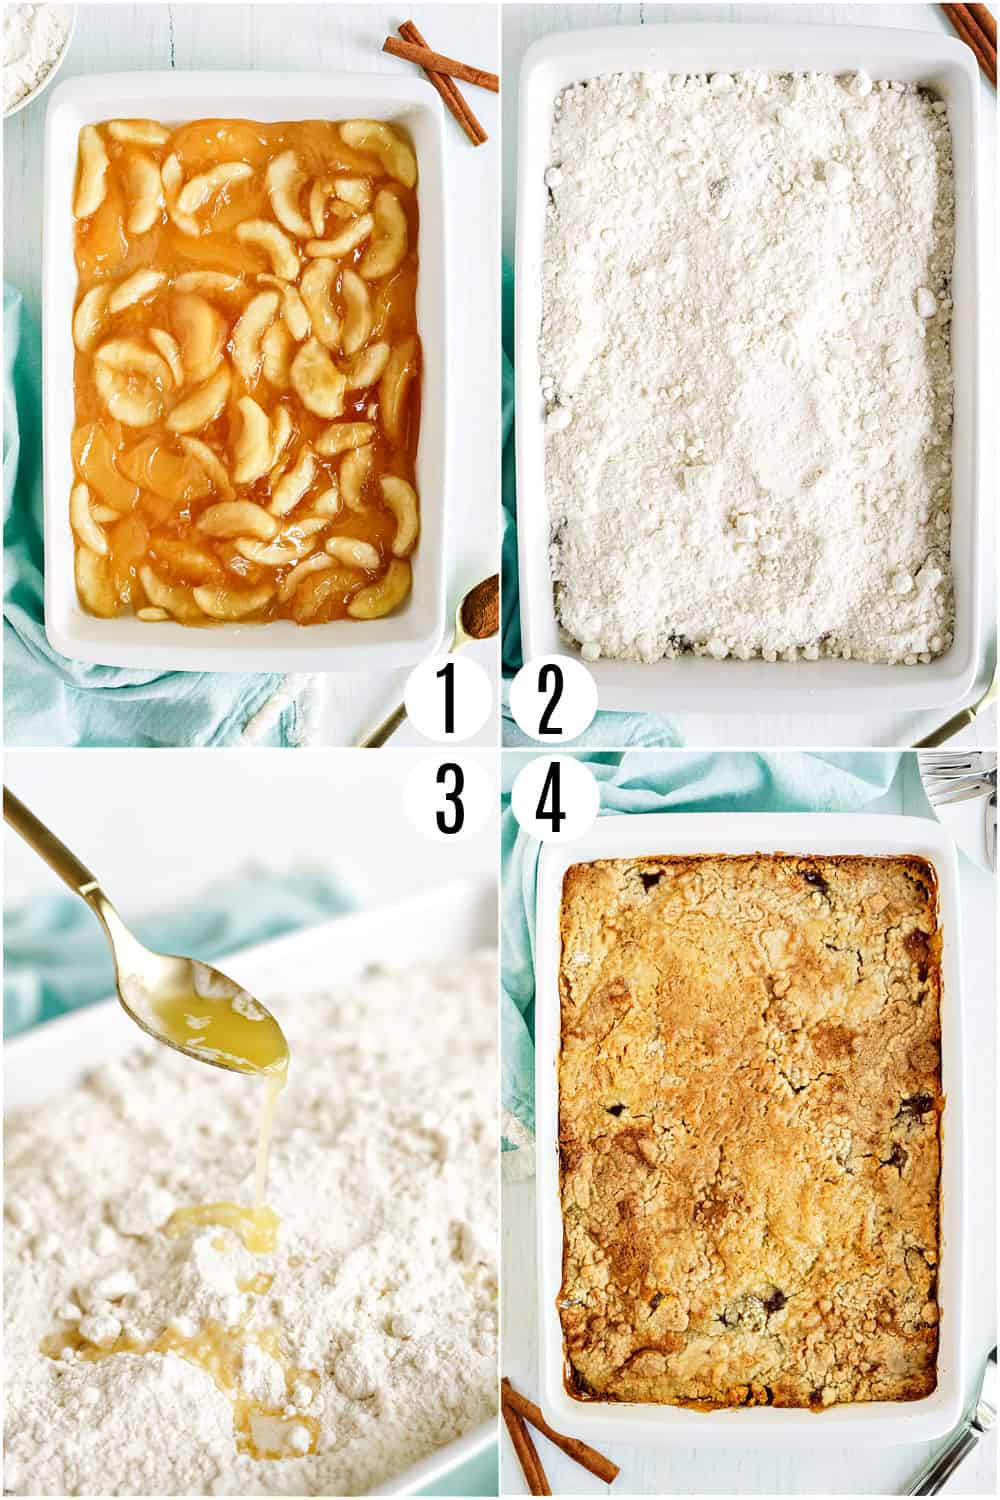 Step by step photos showing how to make apple dump cake.